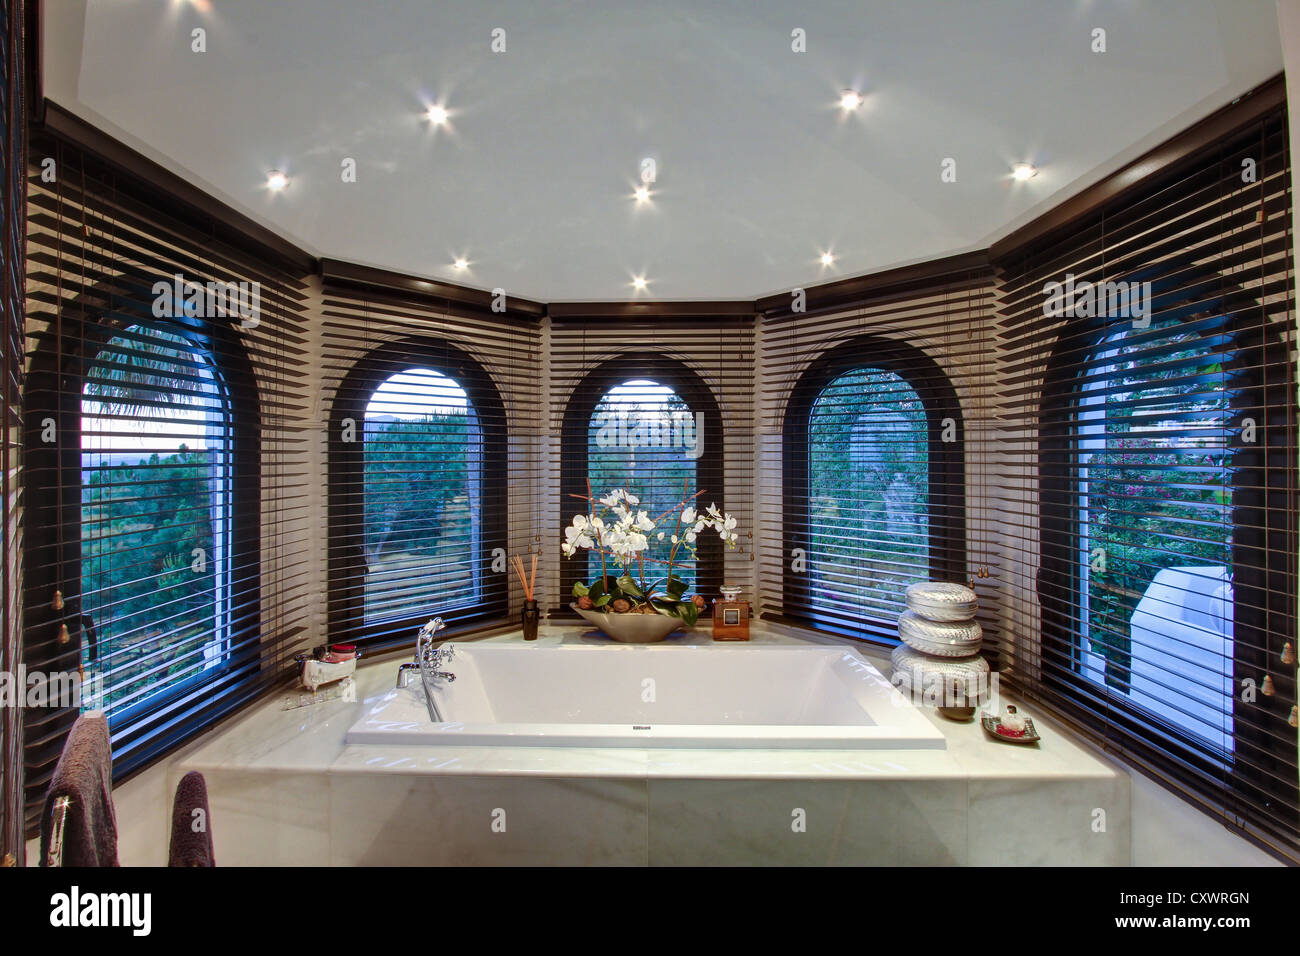 Bathtub in modern bathroom - Stock Image